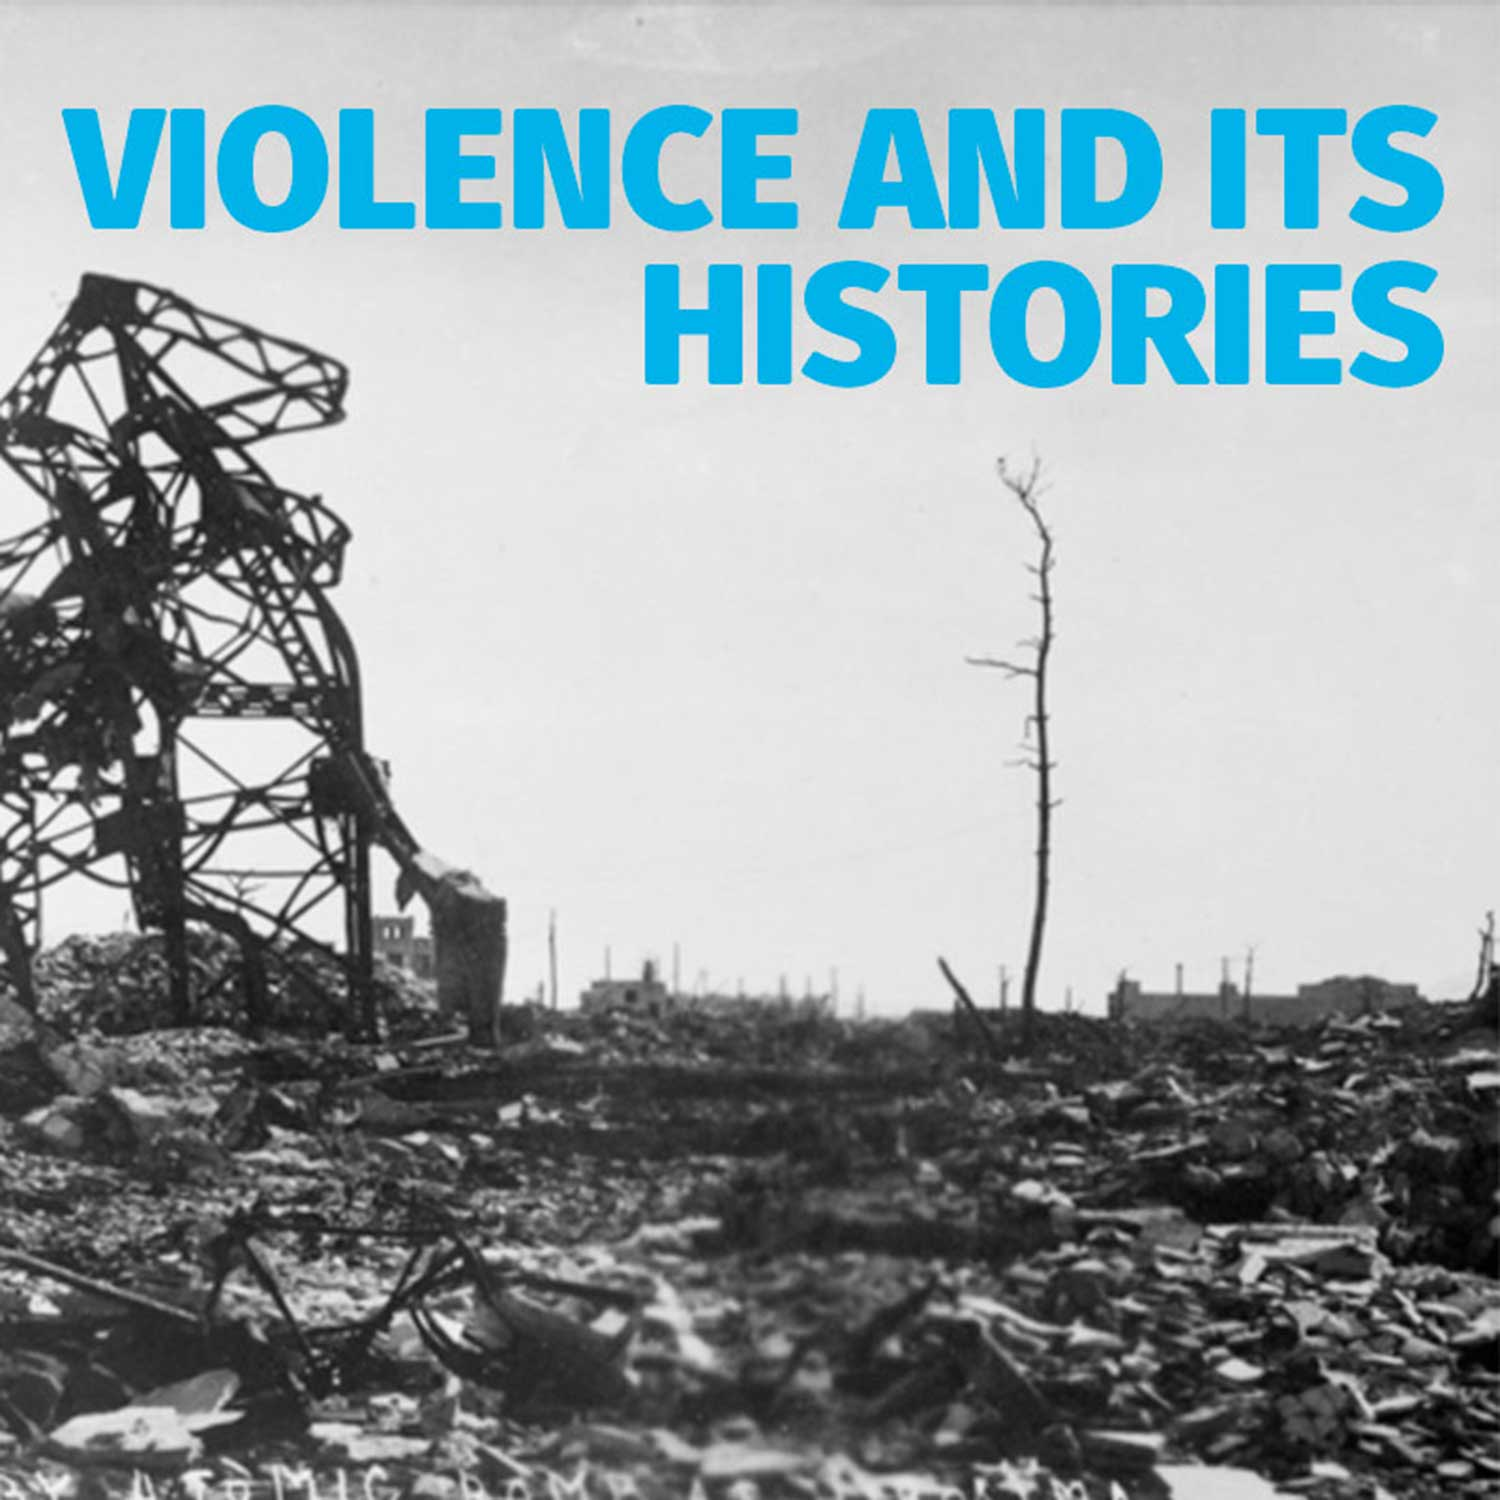 Podcast – Violence and its histories